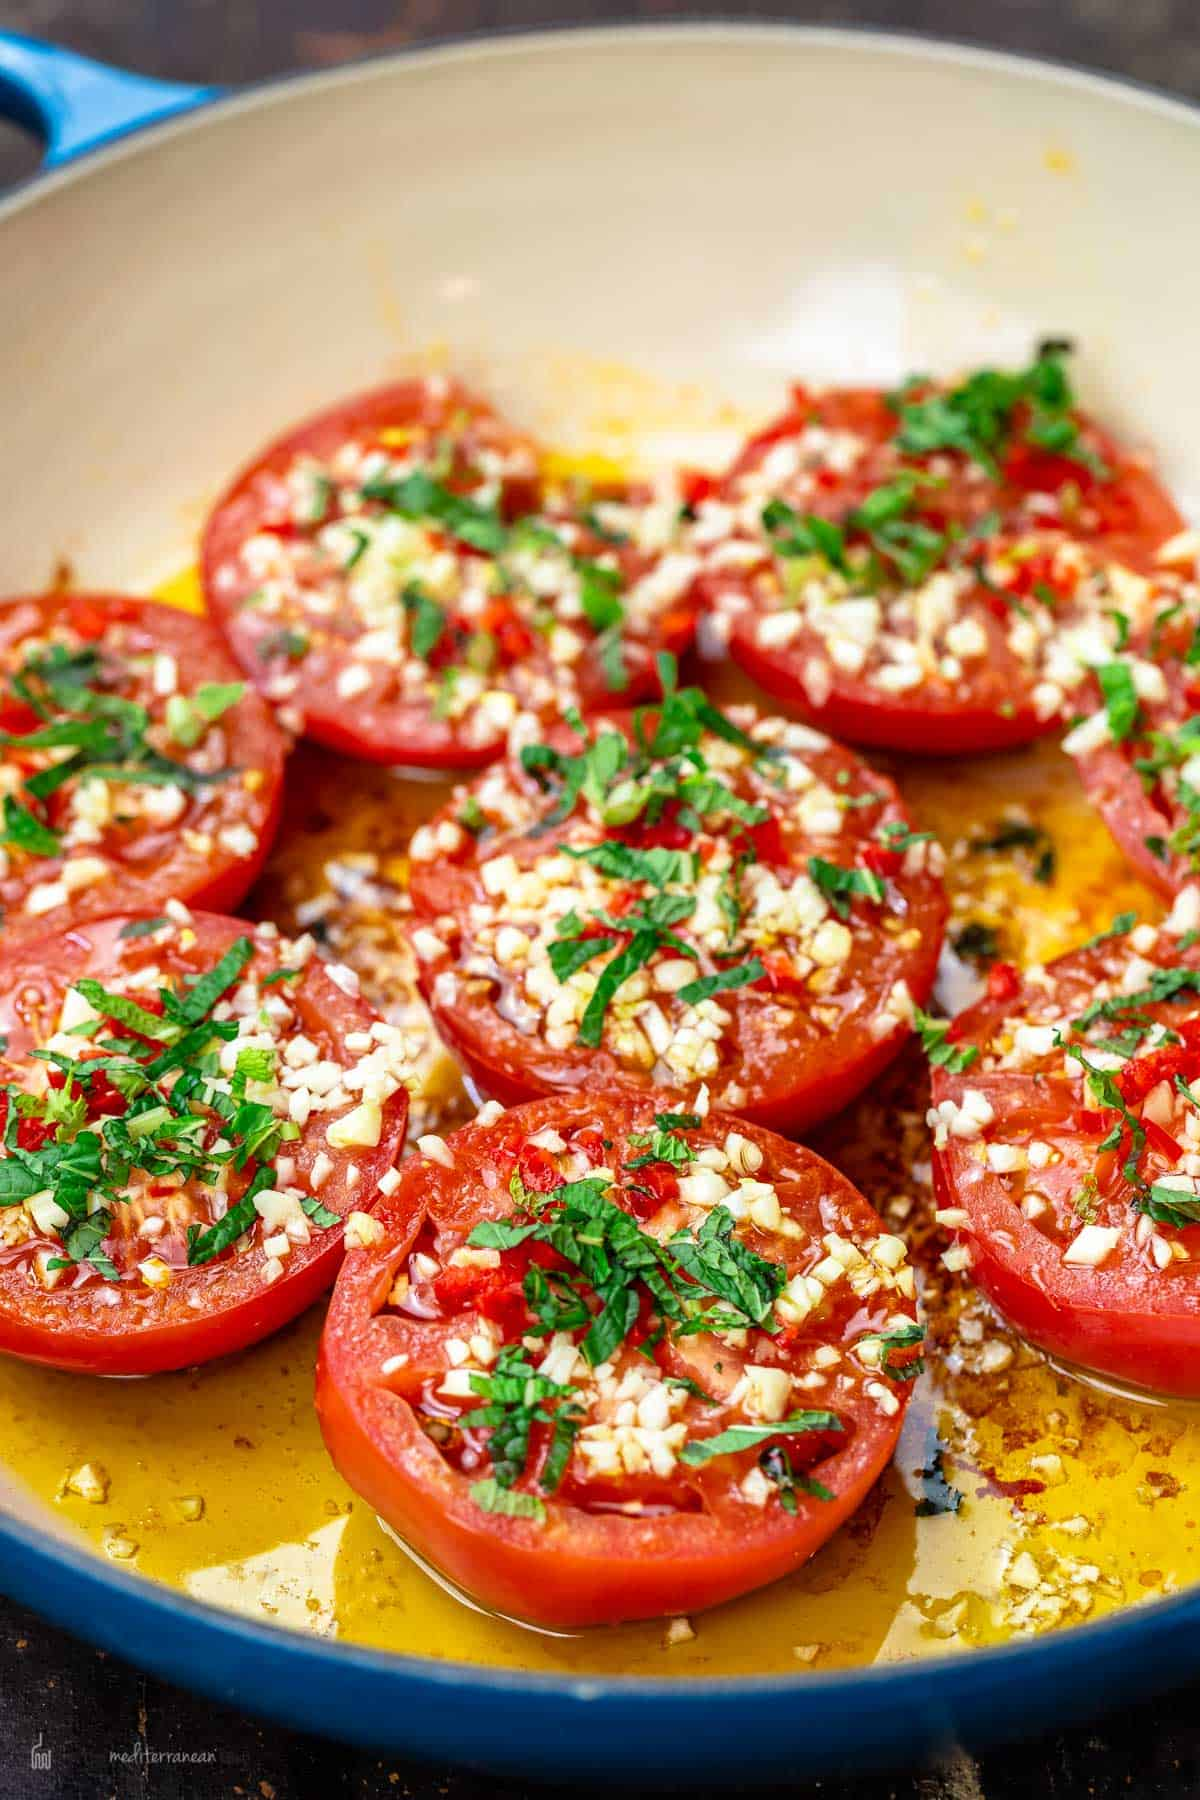 Fried tomatoes in frying pan